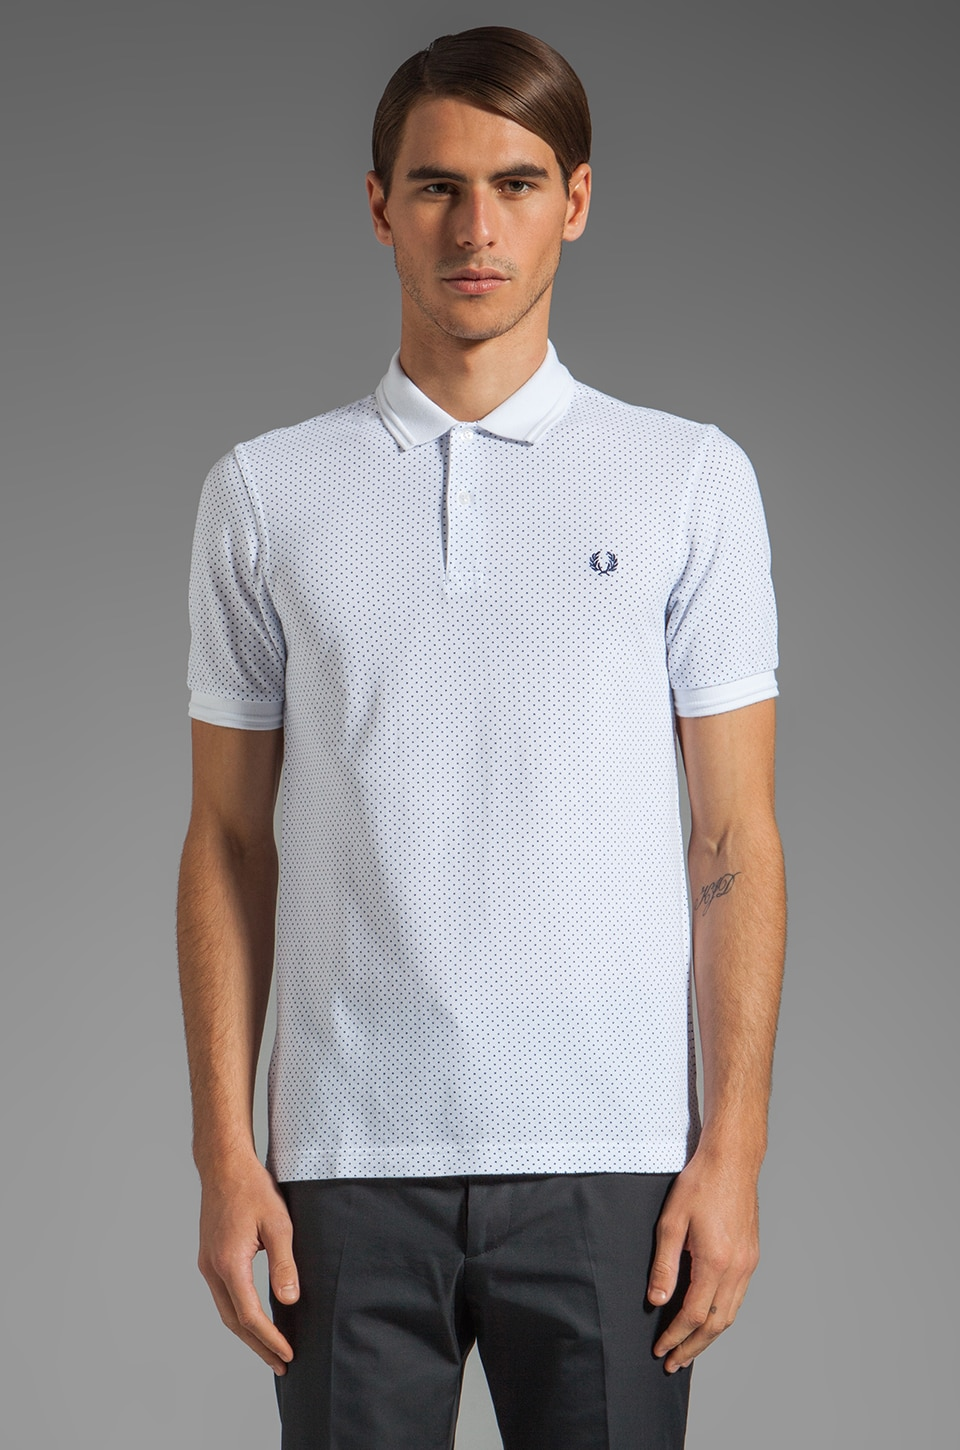 Fred Perry Pin Dot Print Shirt in White